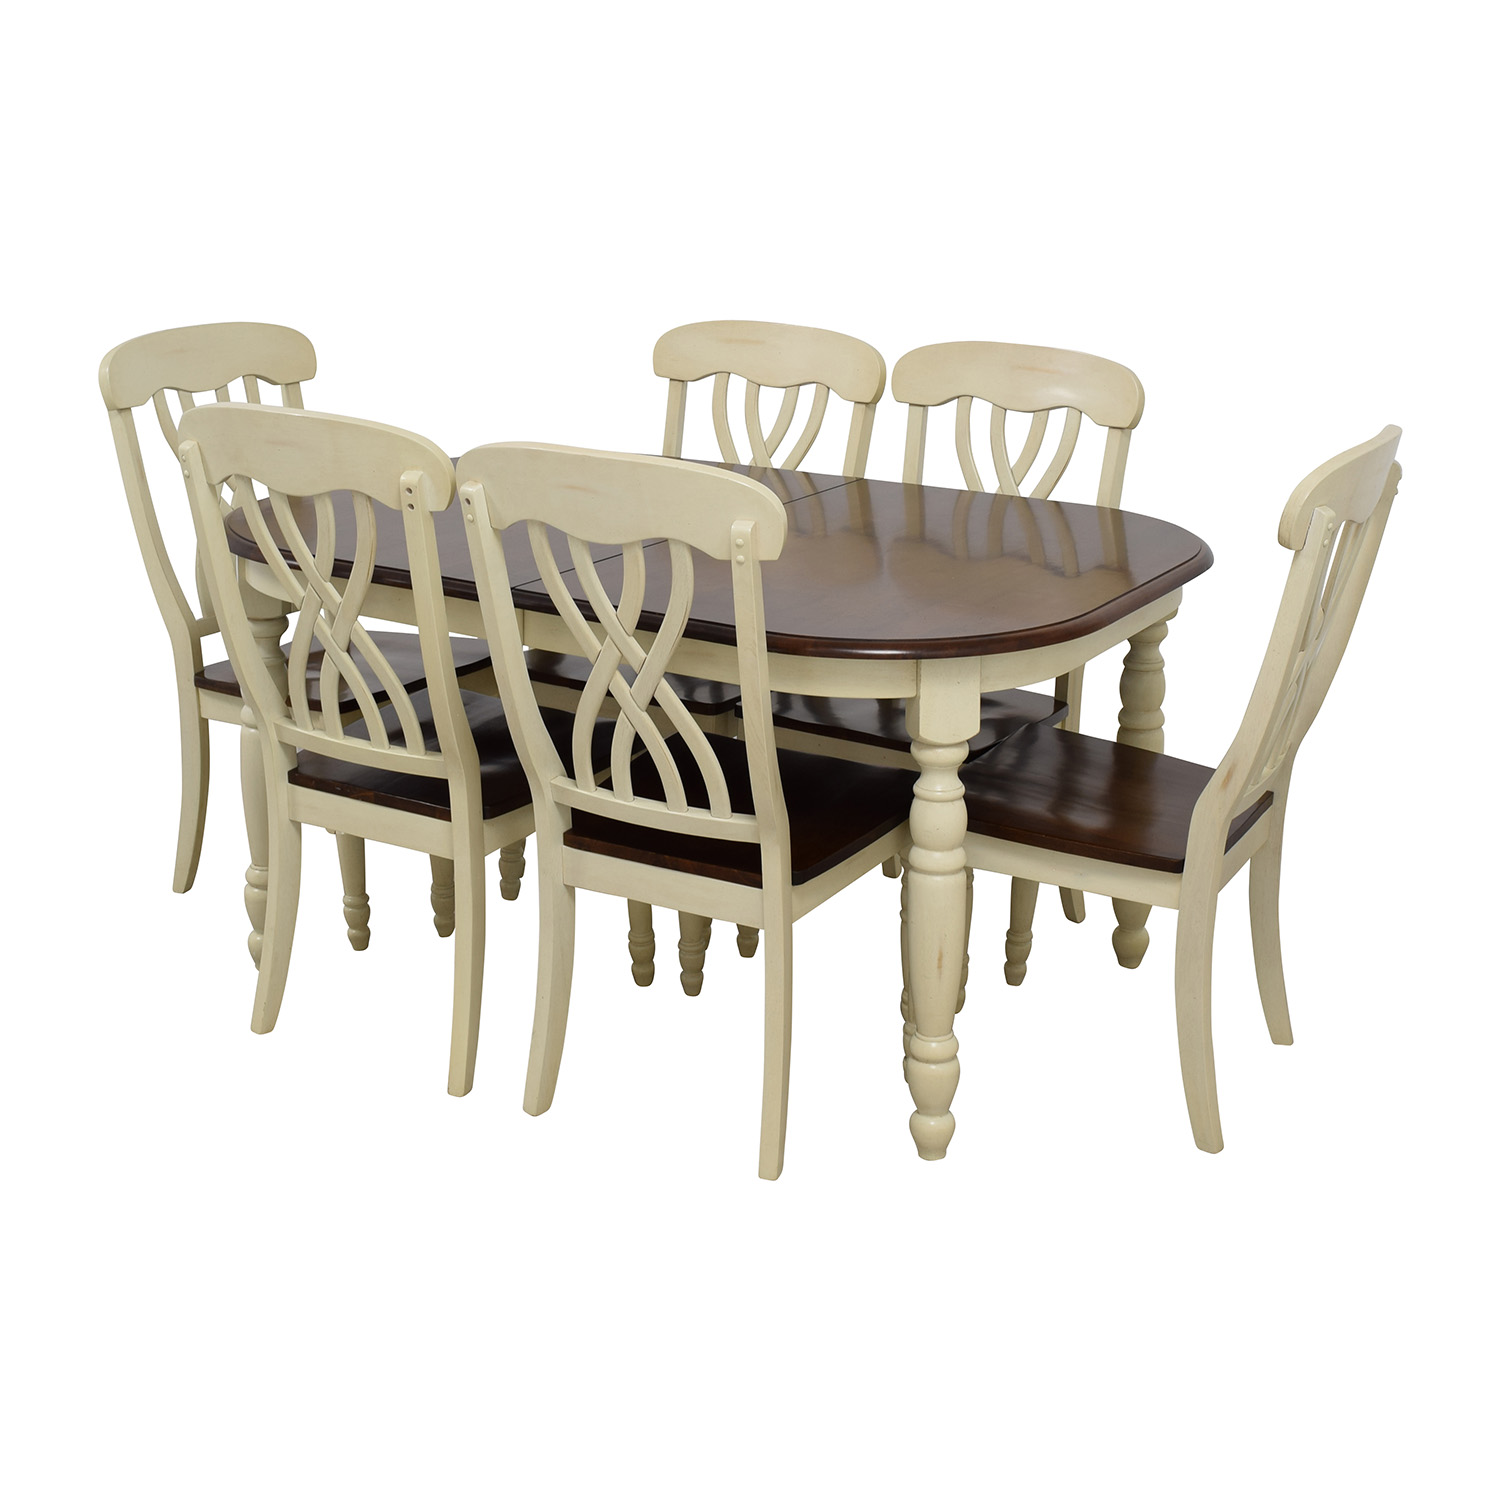 Second Hand Wood Sala Set 50 Off Extendable Wood Dining Table With Chairs Tables